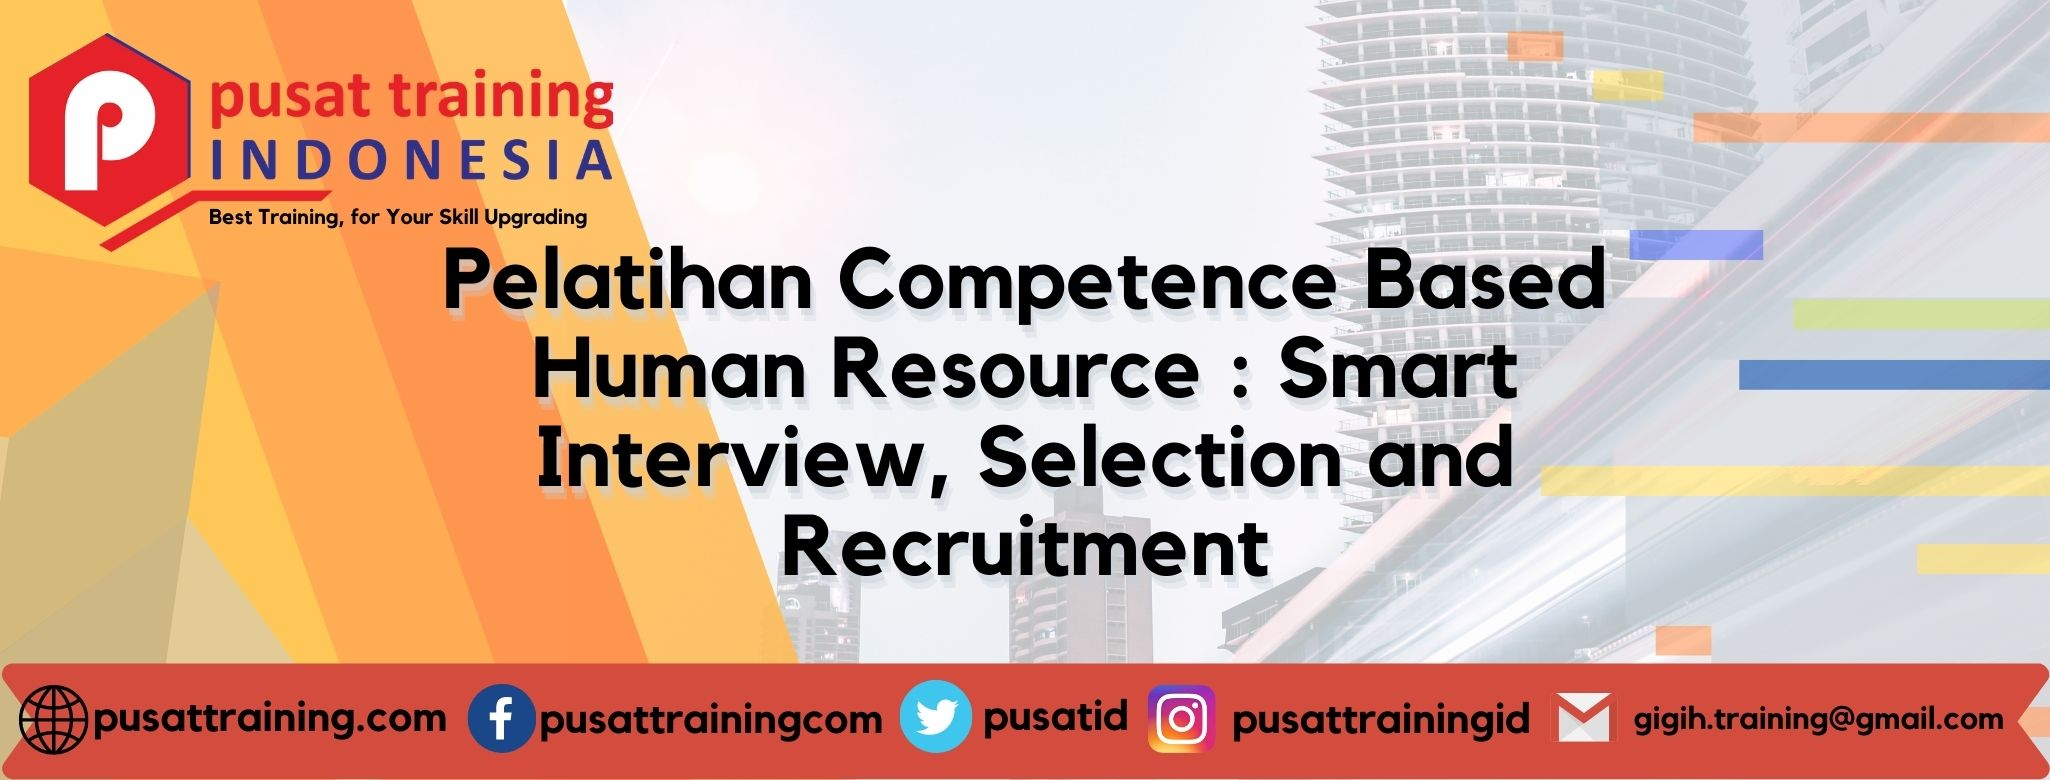 Pelatihan Competence Based Human Resource Smart Interview, Selection and Recruitment